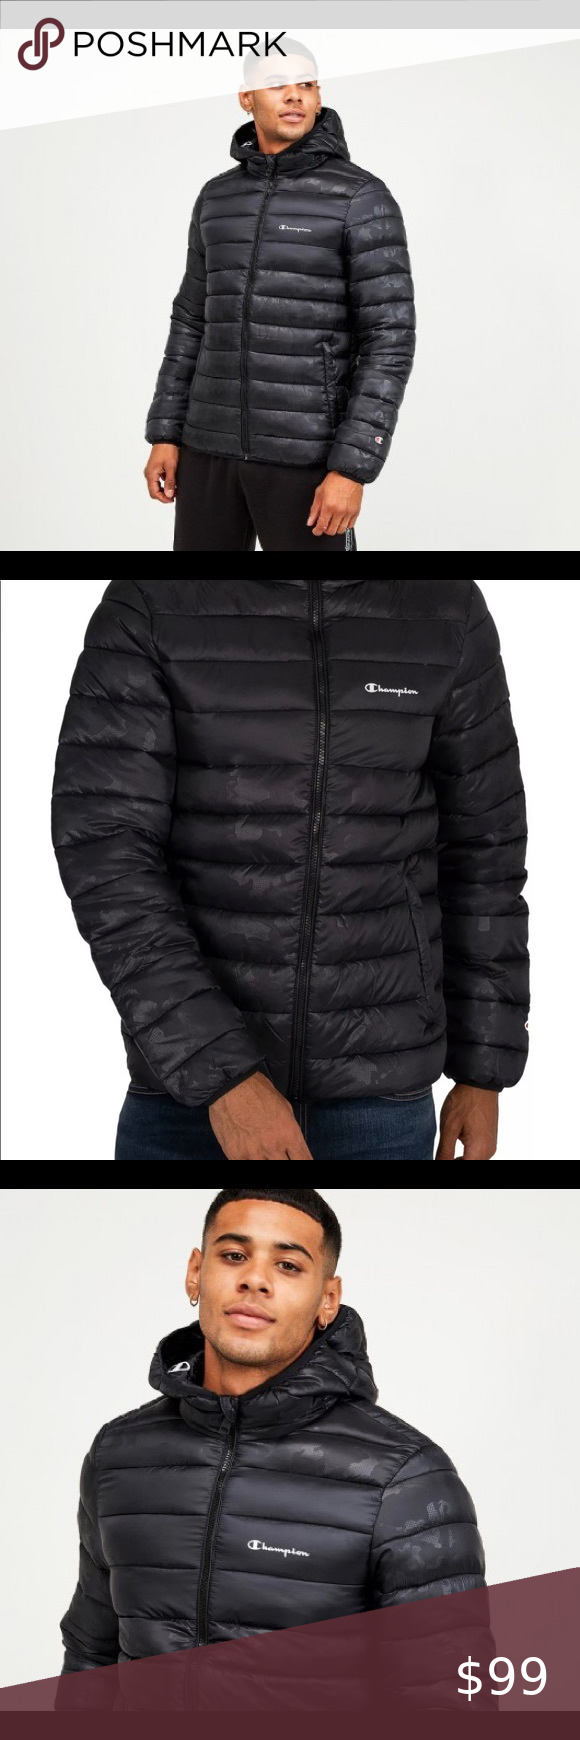 New Champion Men S Hooded Puffer Jacket Product Info Champion Linear Left Chest Logo Padded Jacket Champion Linear Lef Mens Hooded Clothes Design New Champion [ 1740 x 580 Pixel ]